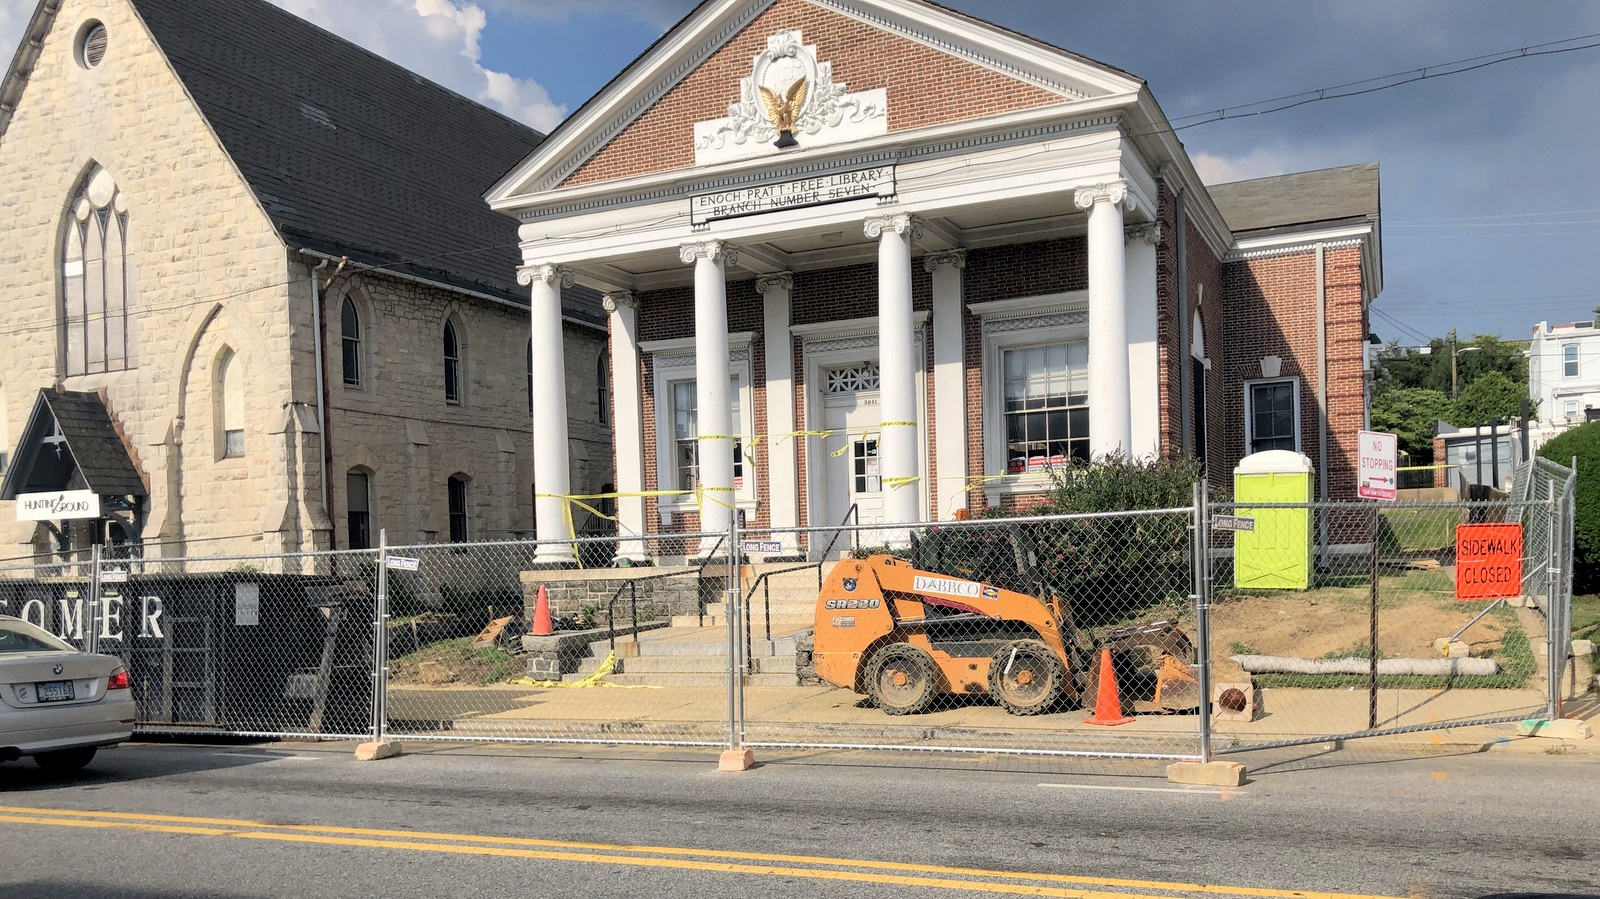 Outside the Hampden branch of the Pratt Library yesterday, construction work narrowed the roadway. (Fern Shen)